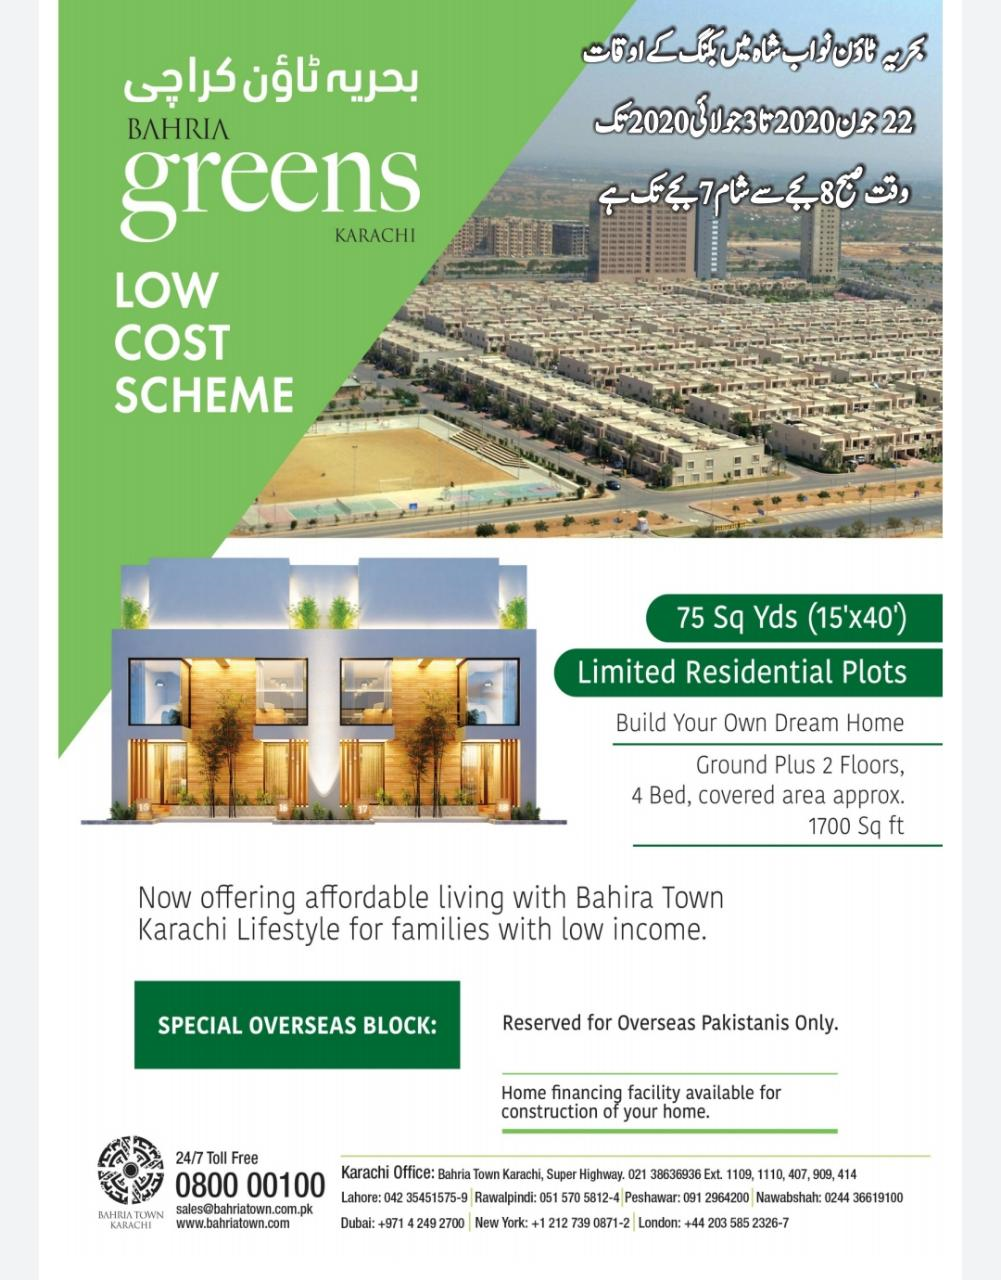 75 SQ YARDS PLOTS AVAILABLE IN BAHRIA GREEN BY BAHRIA TOWN